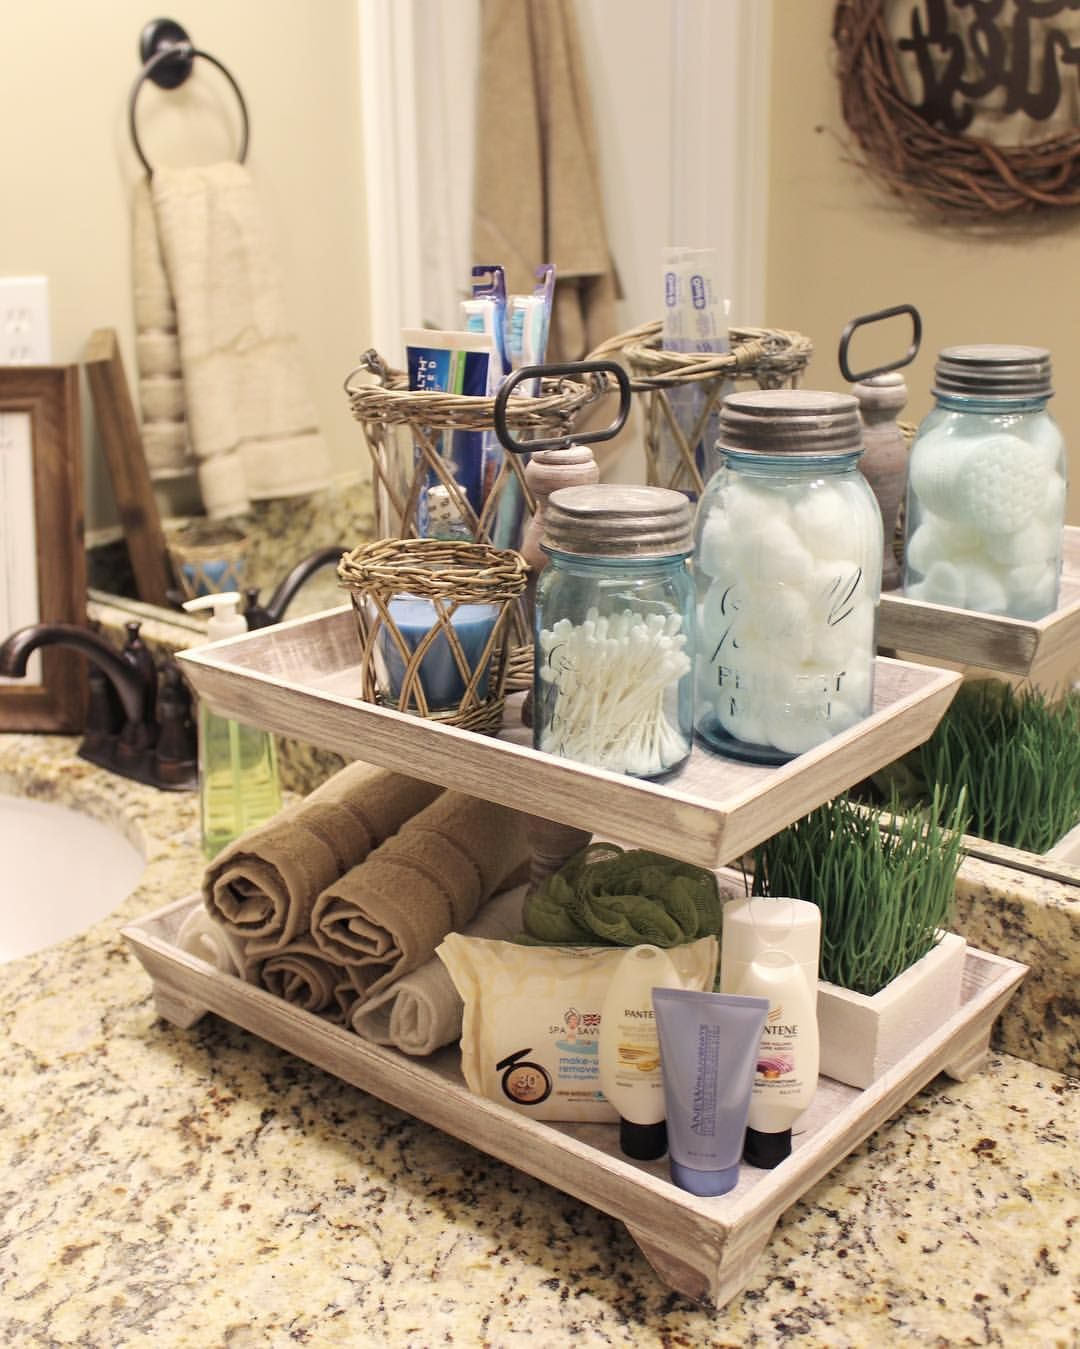 Pin by lauriesplace on designing dreams in 2019 home - How to decorate a bathroom counter ...